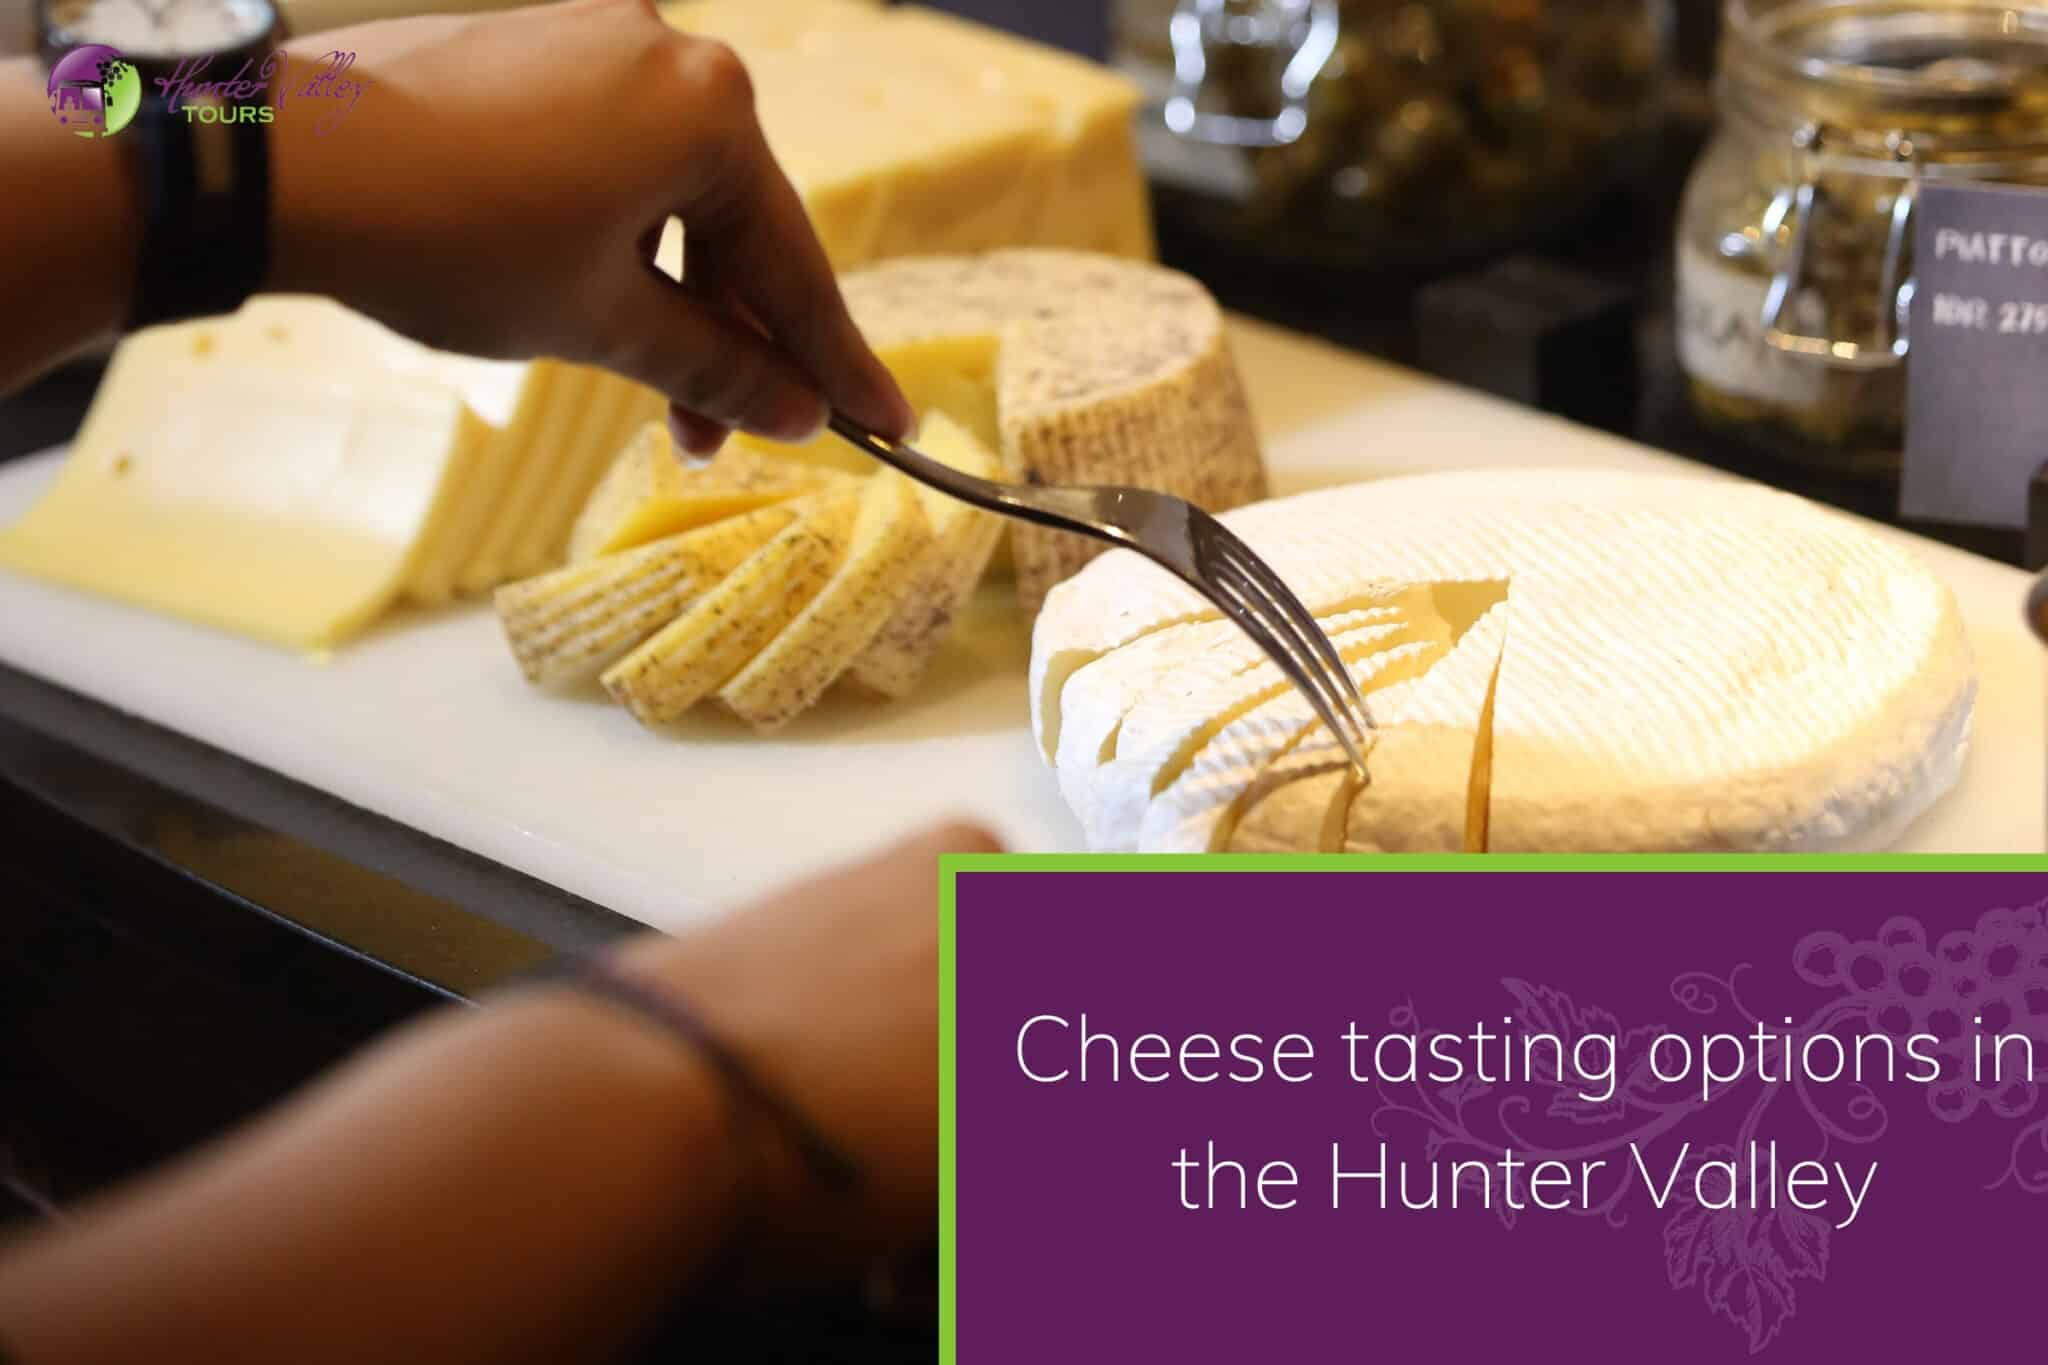 Cheese tasting options in the Hunter Valley